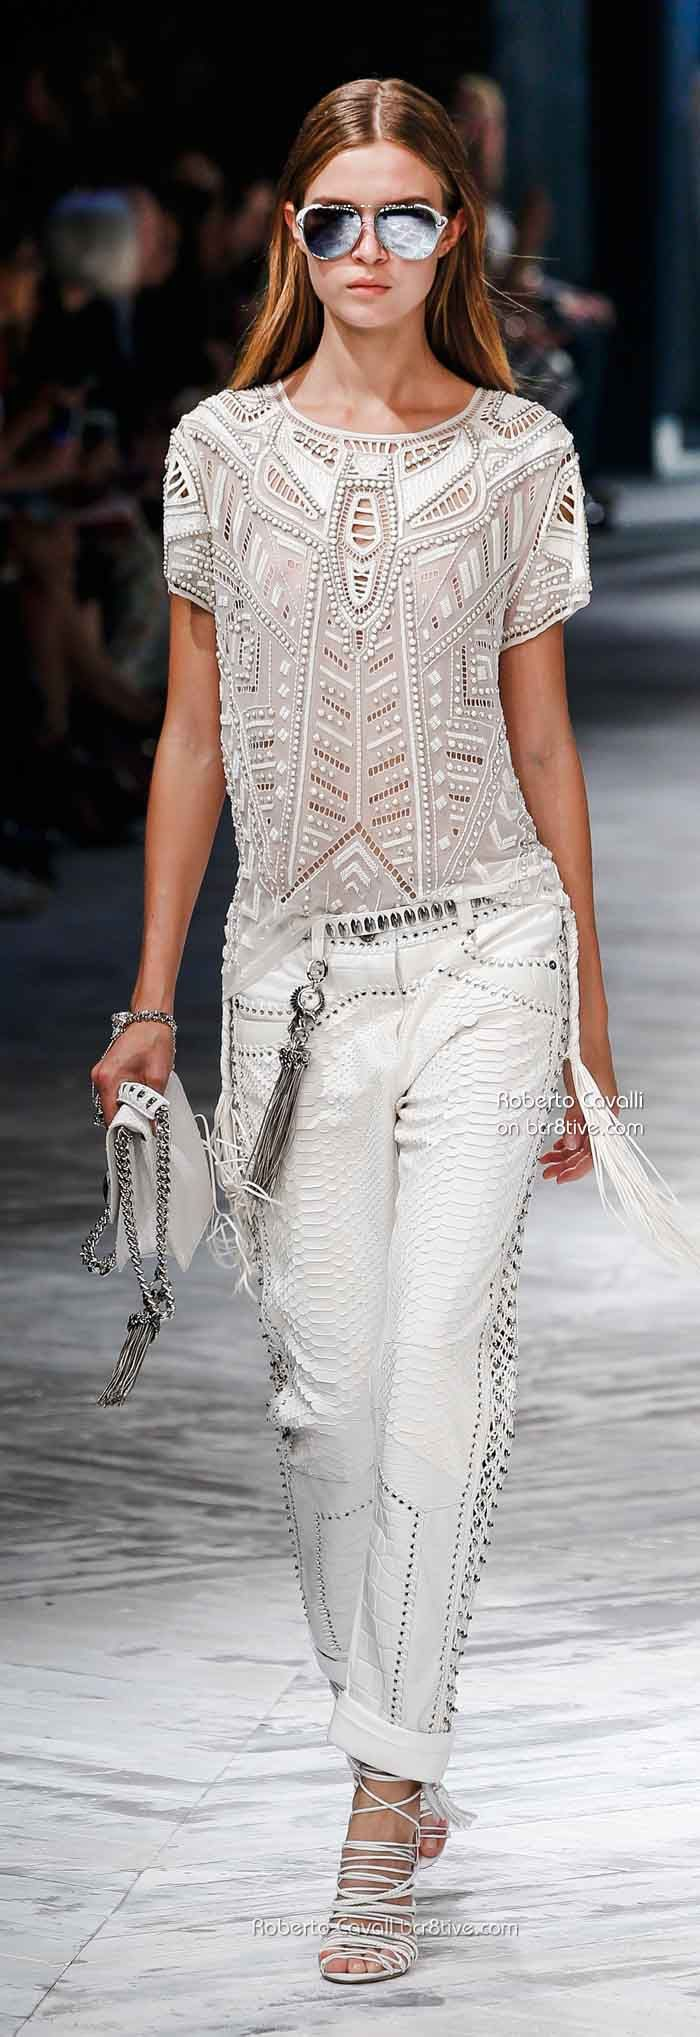 Roberto Cavalli Spring 2014, http://gtl.clothing/a_search.php#/post/Roberto%20Cavalli/true @gtl_clothing #getthelook